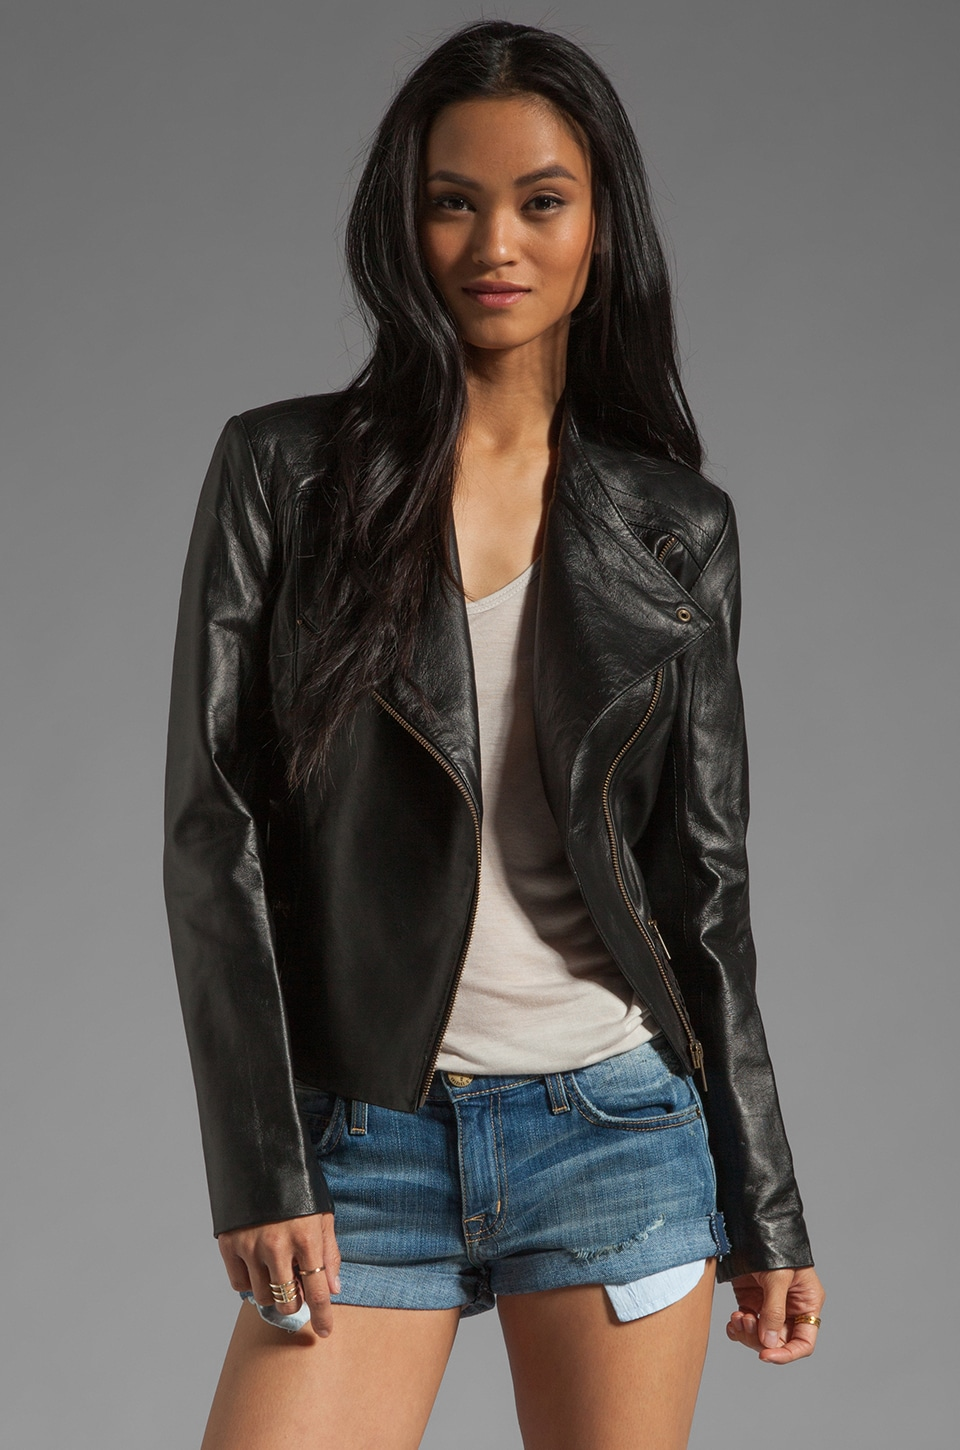 Alice by Temperley Valois Leather Jacket in Black